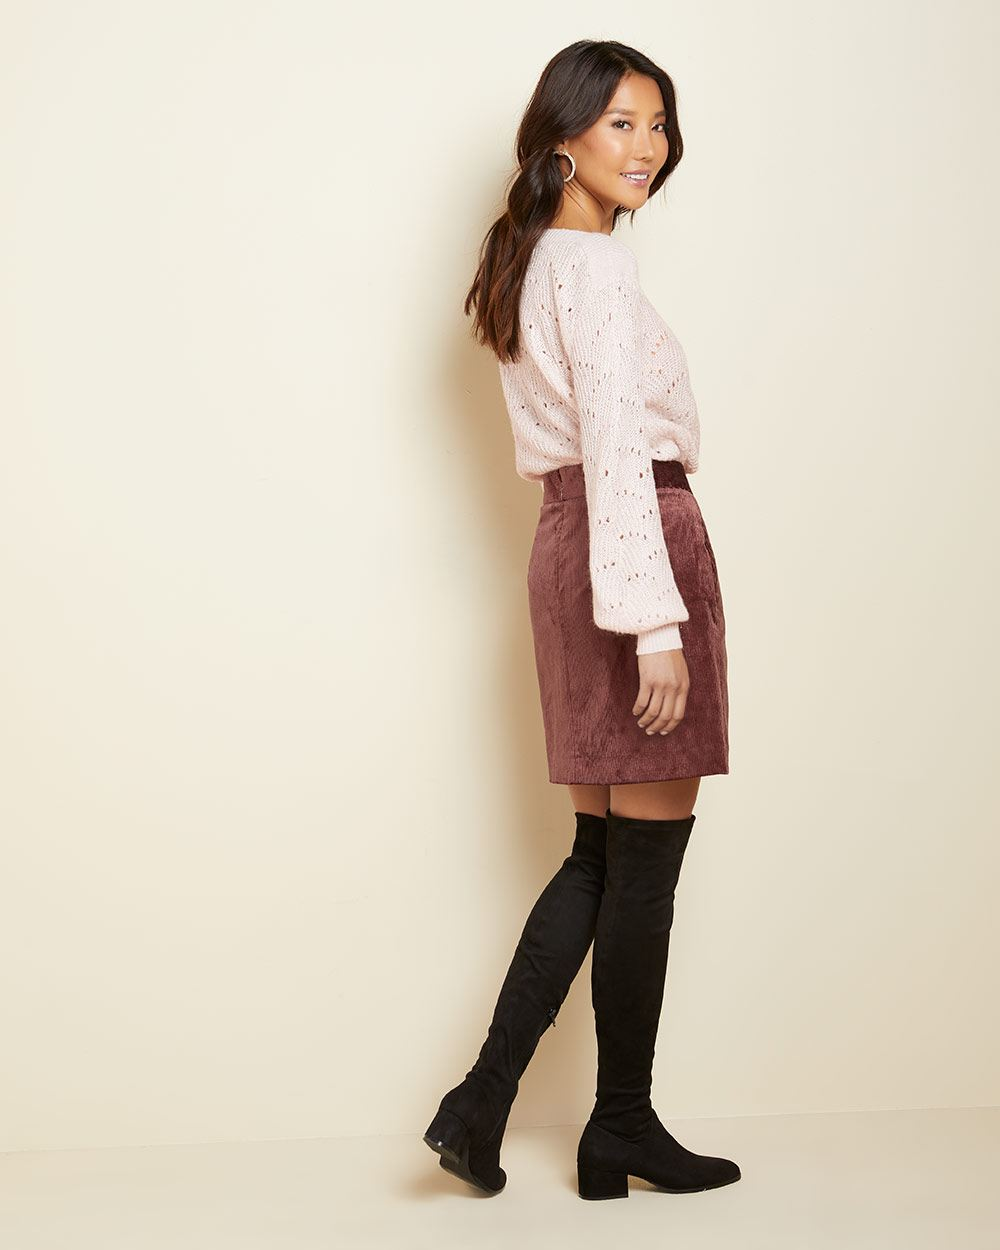 Short corduroy skirt